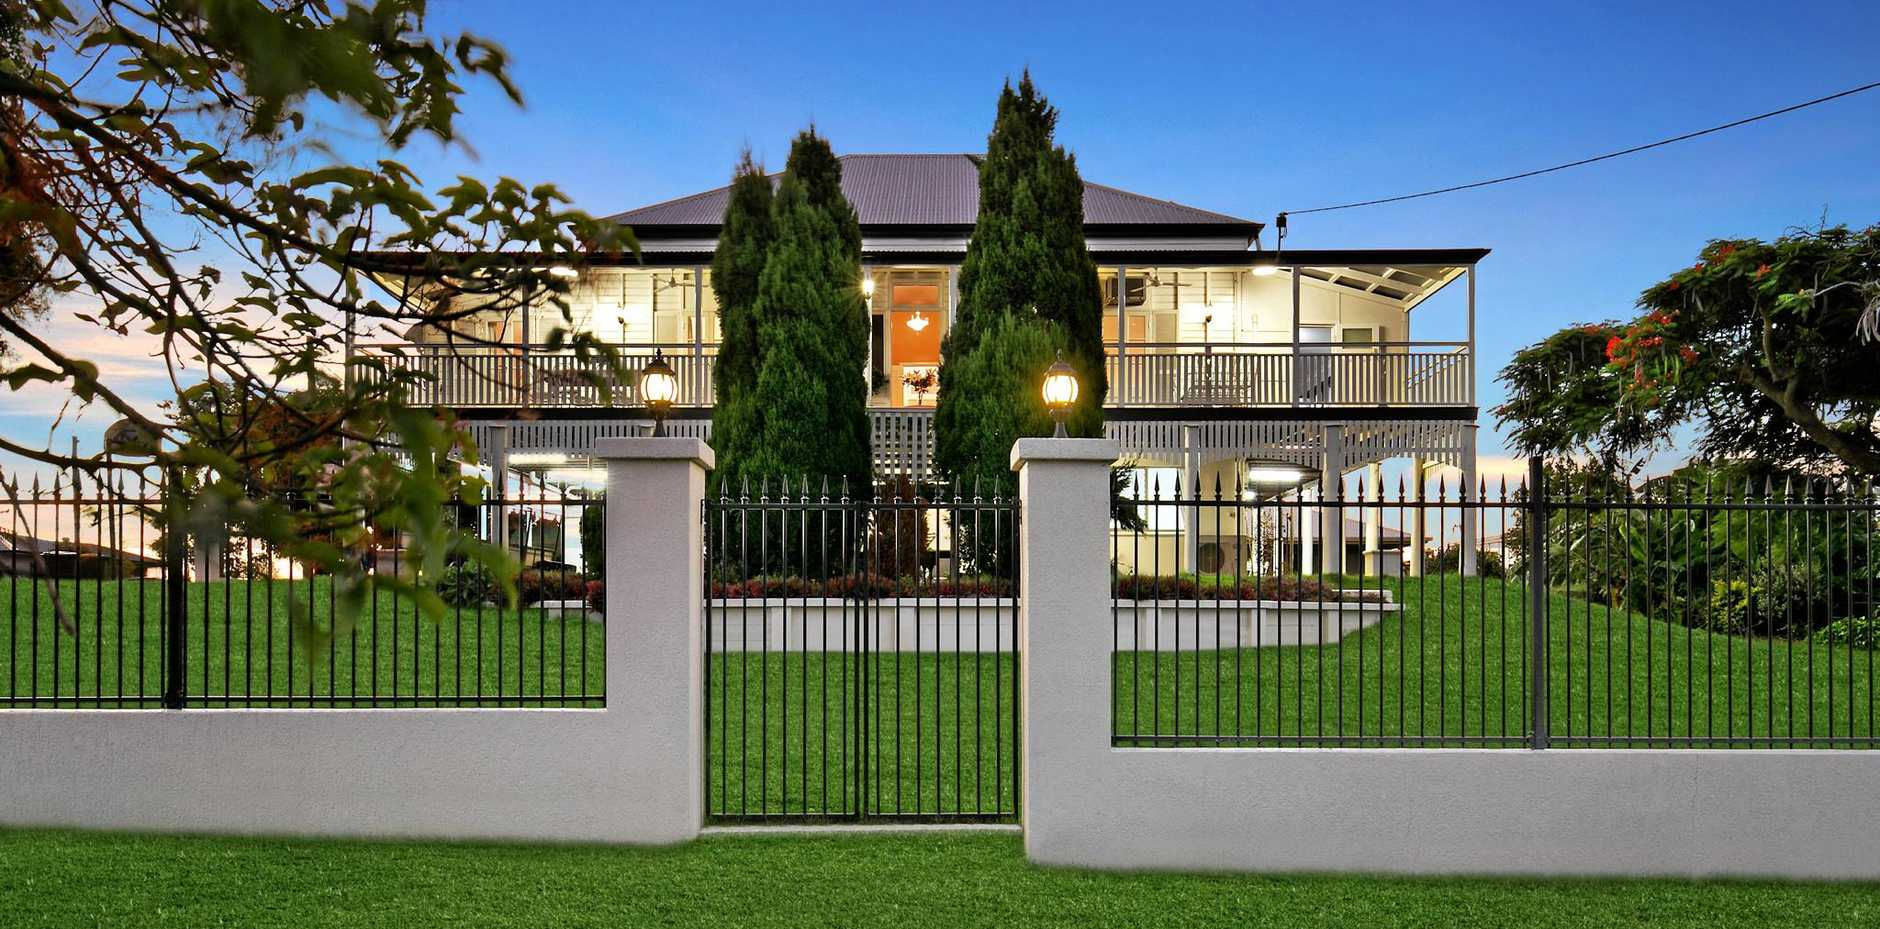 28 King St, The Range is on the market for $920,000.